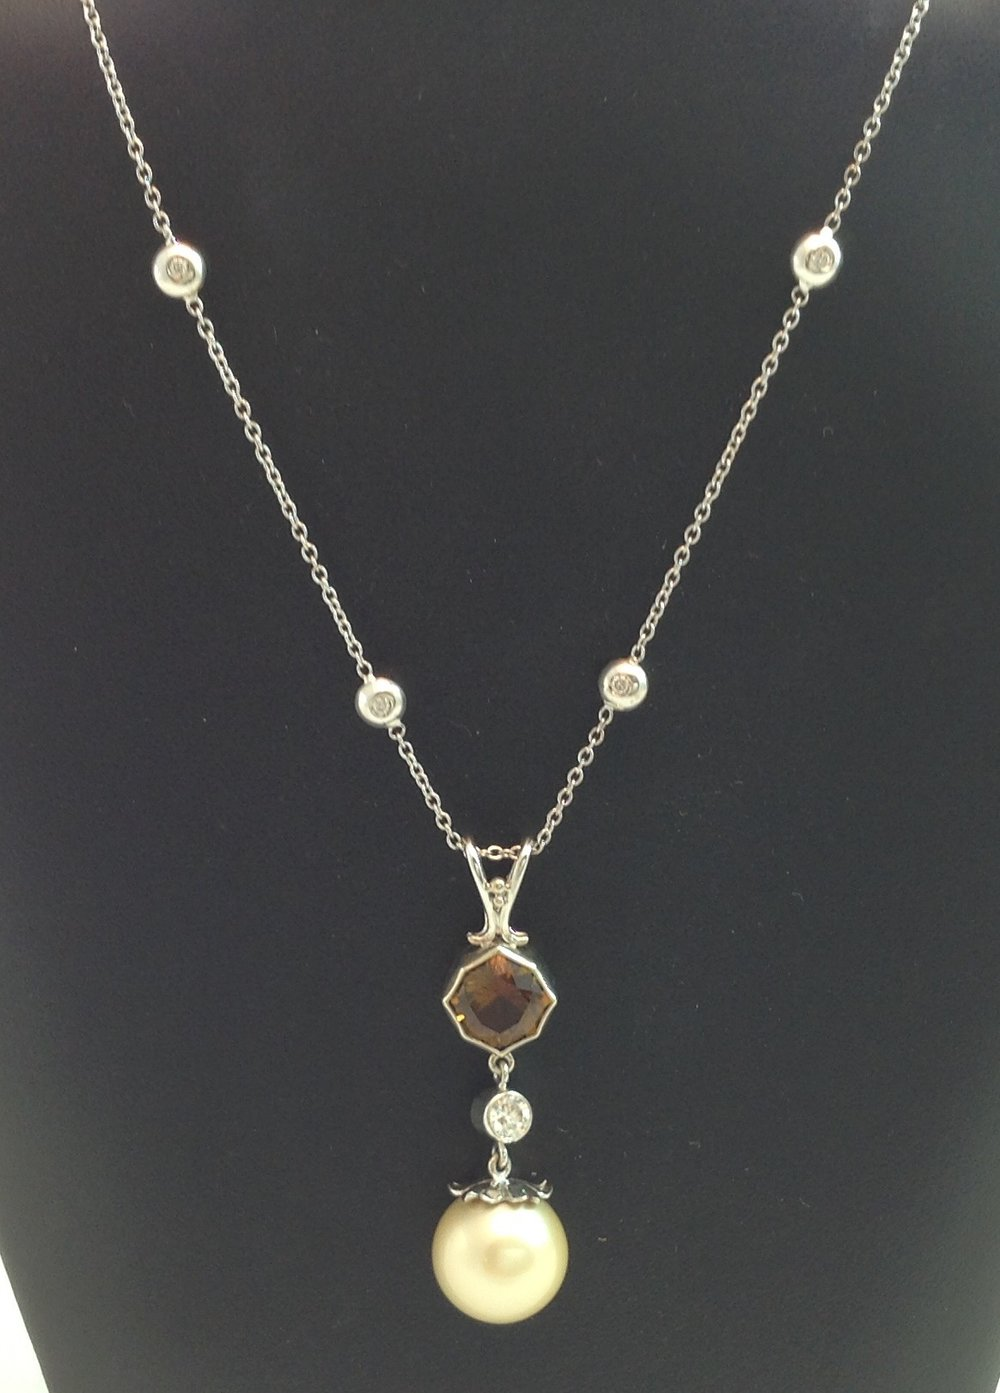 South Seas Pearl Pendant & Chain